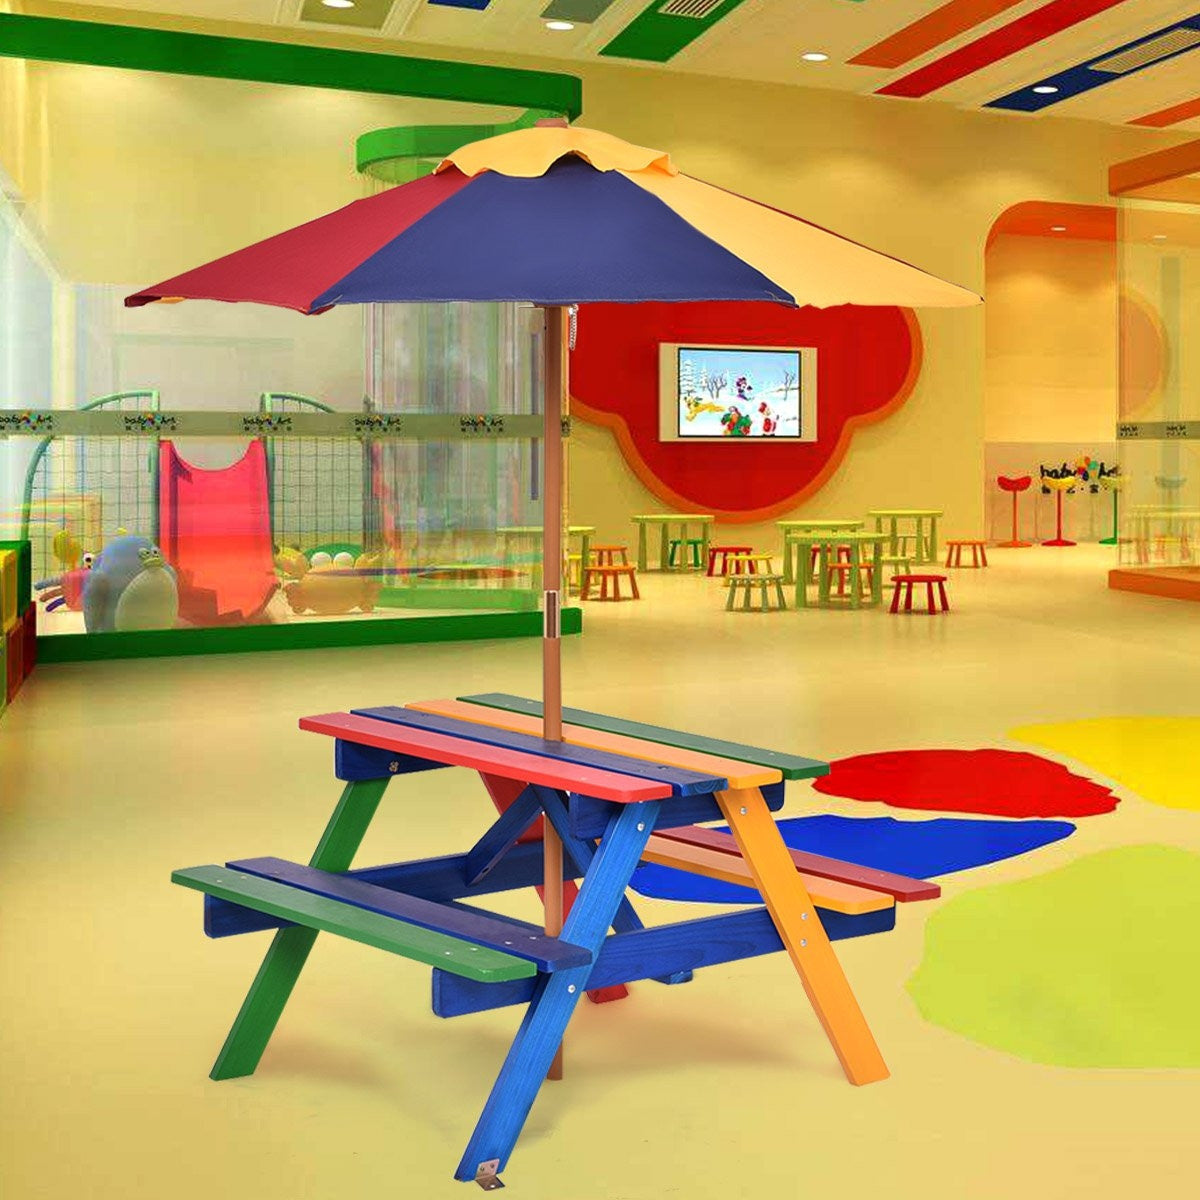 Kids wooden picnic table indoors